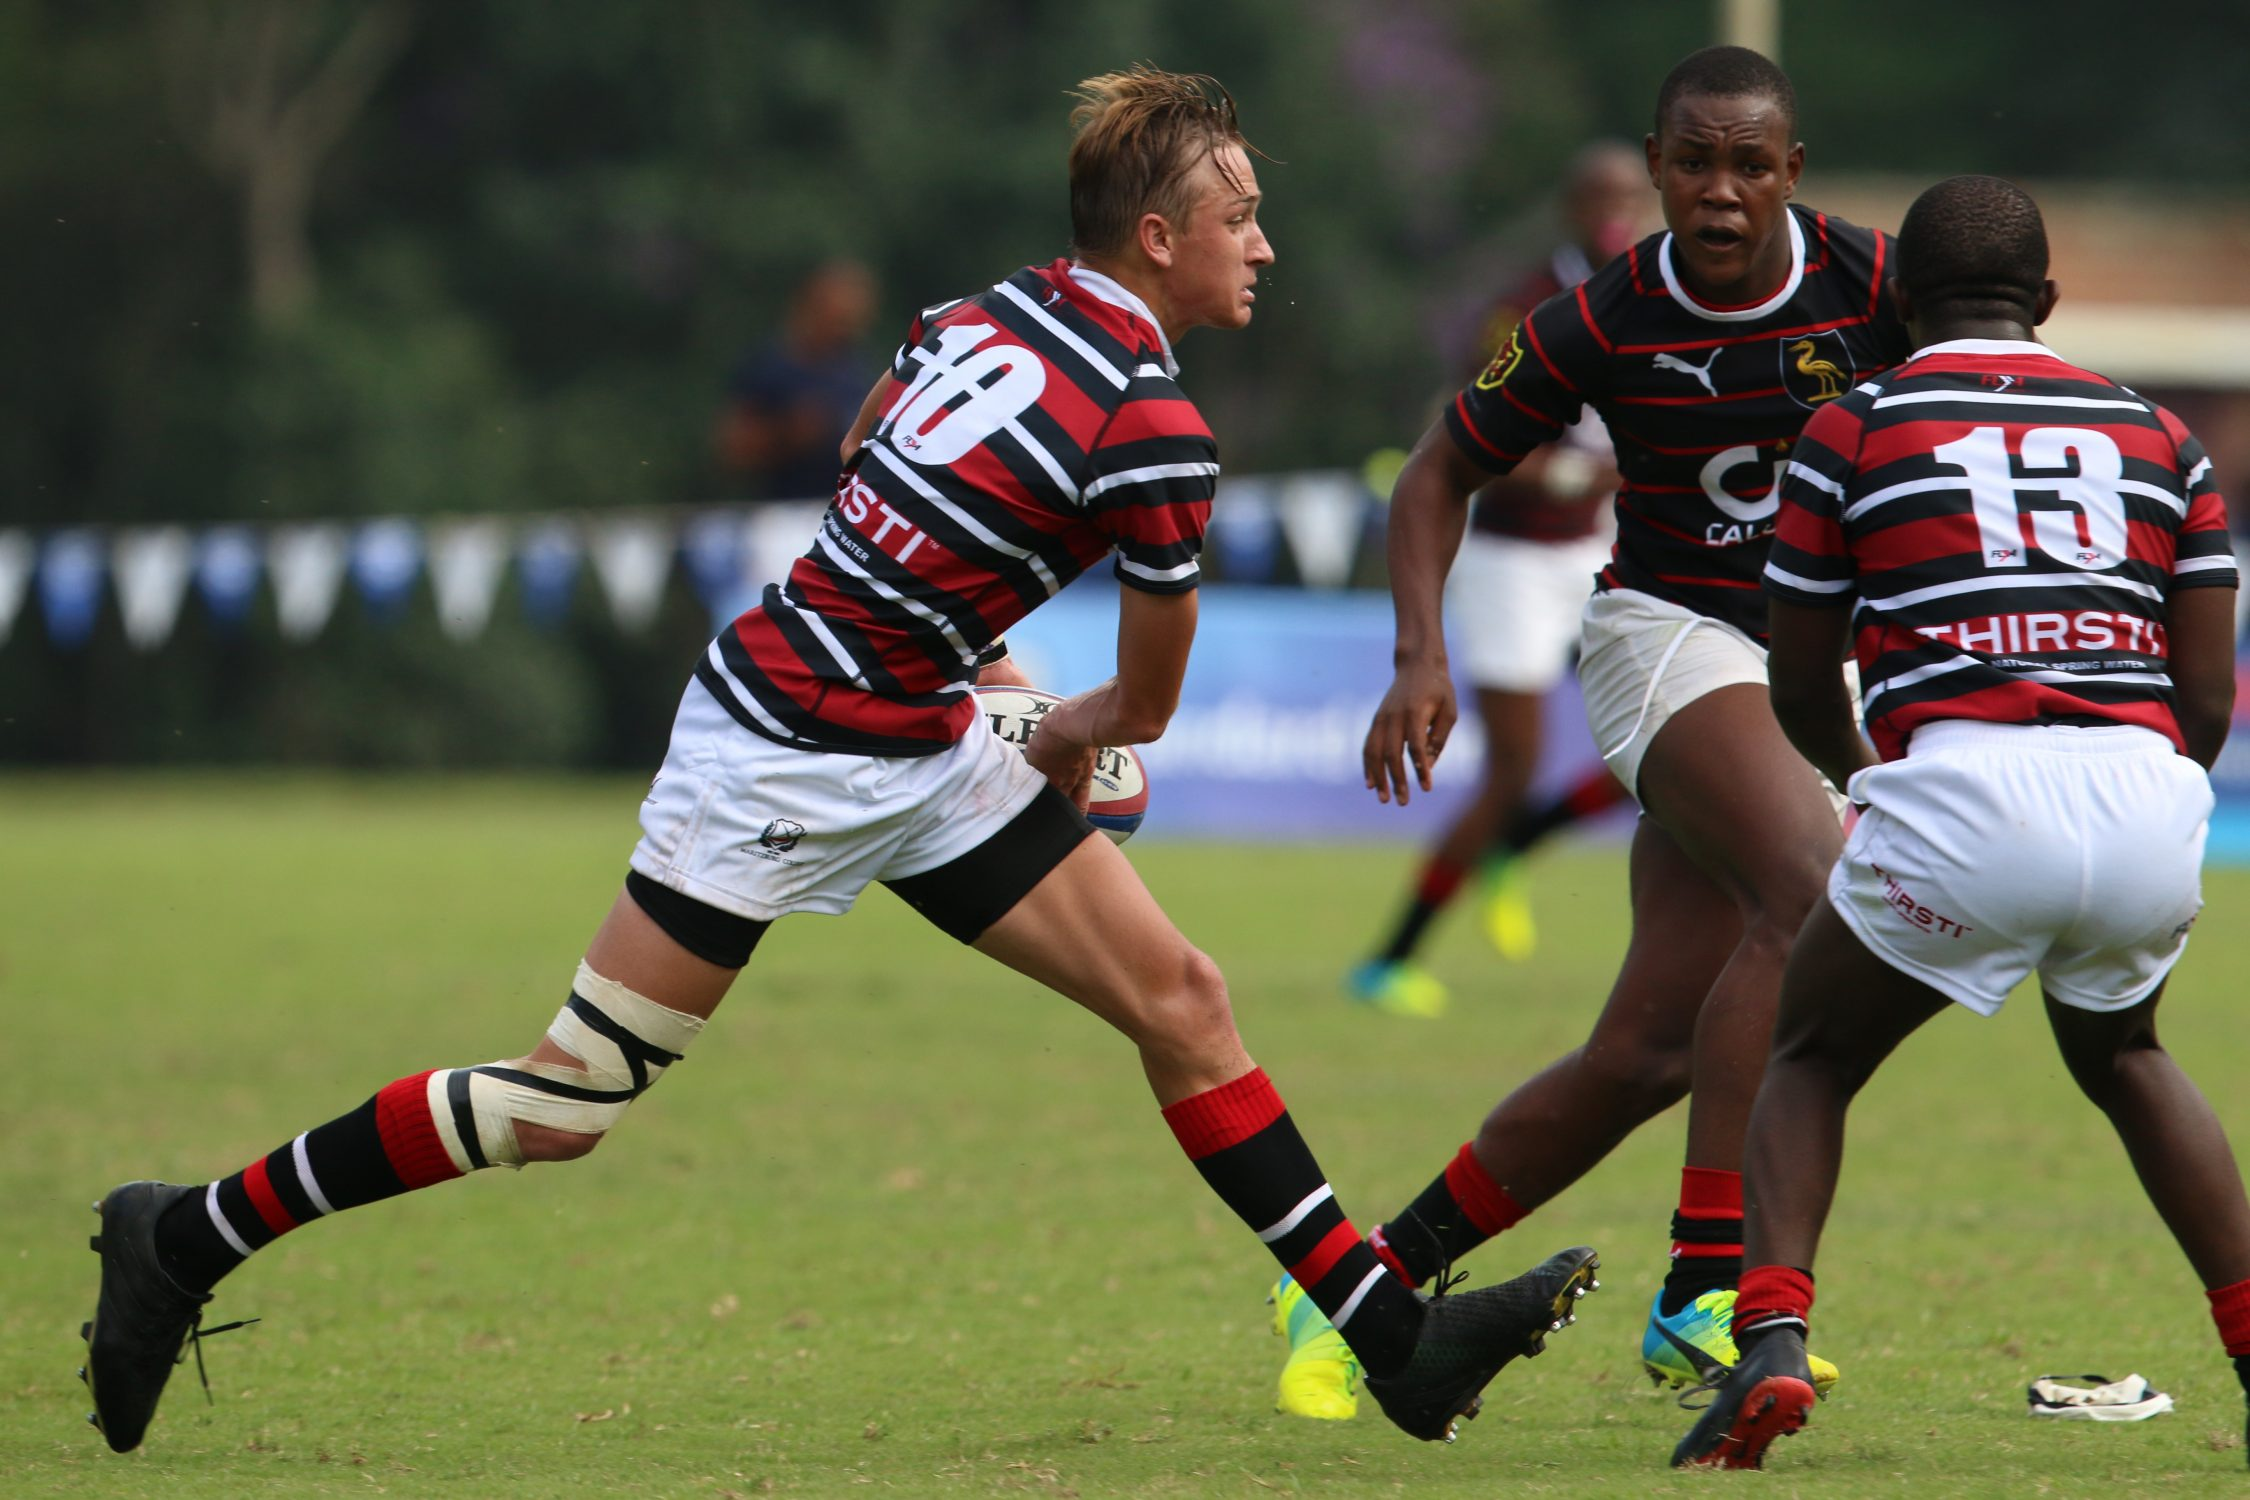 Maritzburg College play Dale College at Kearsney Easter Rugby Festival